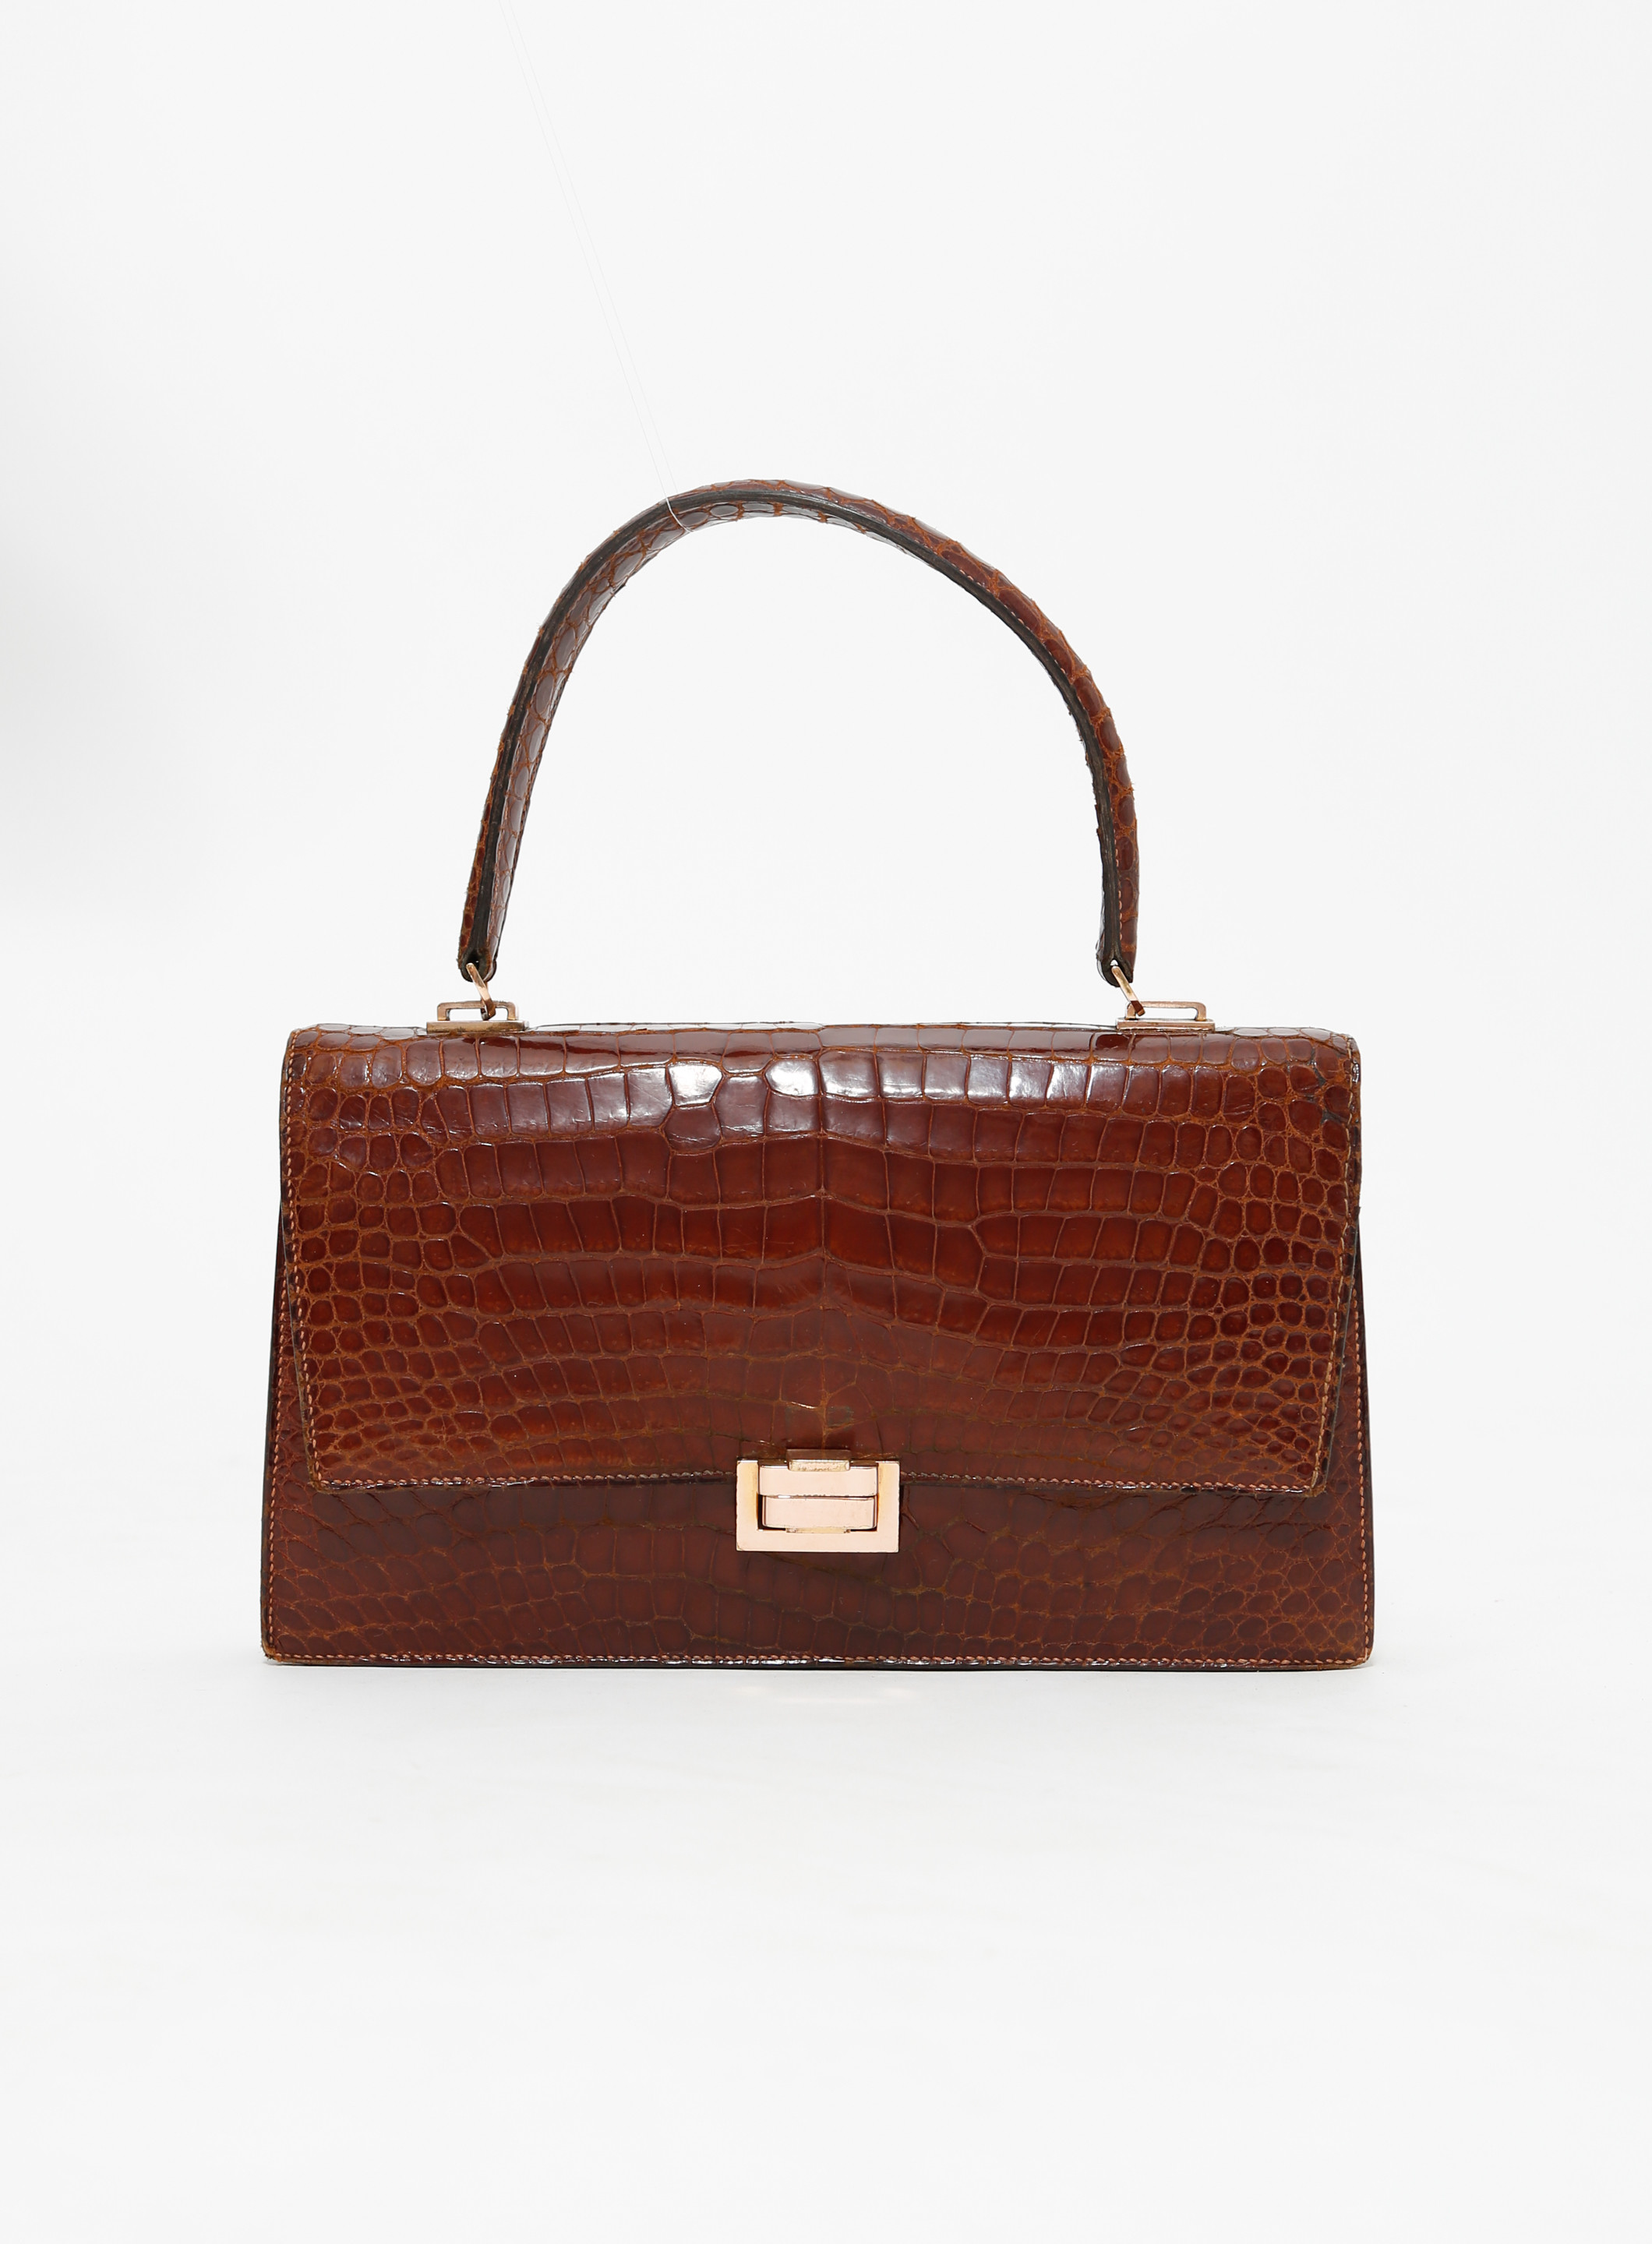 Hermès '60s Crocodile Top Handle Bag